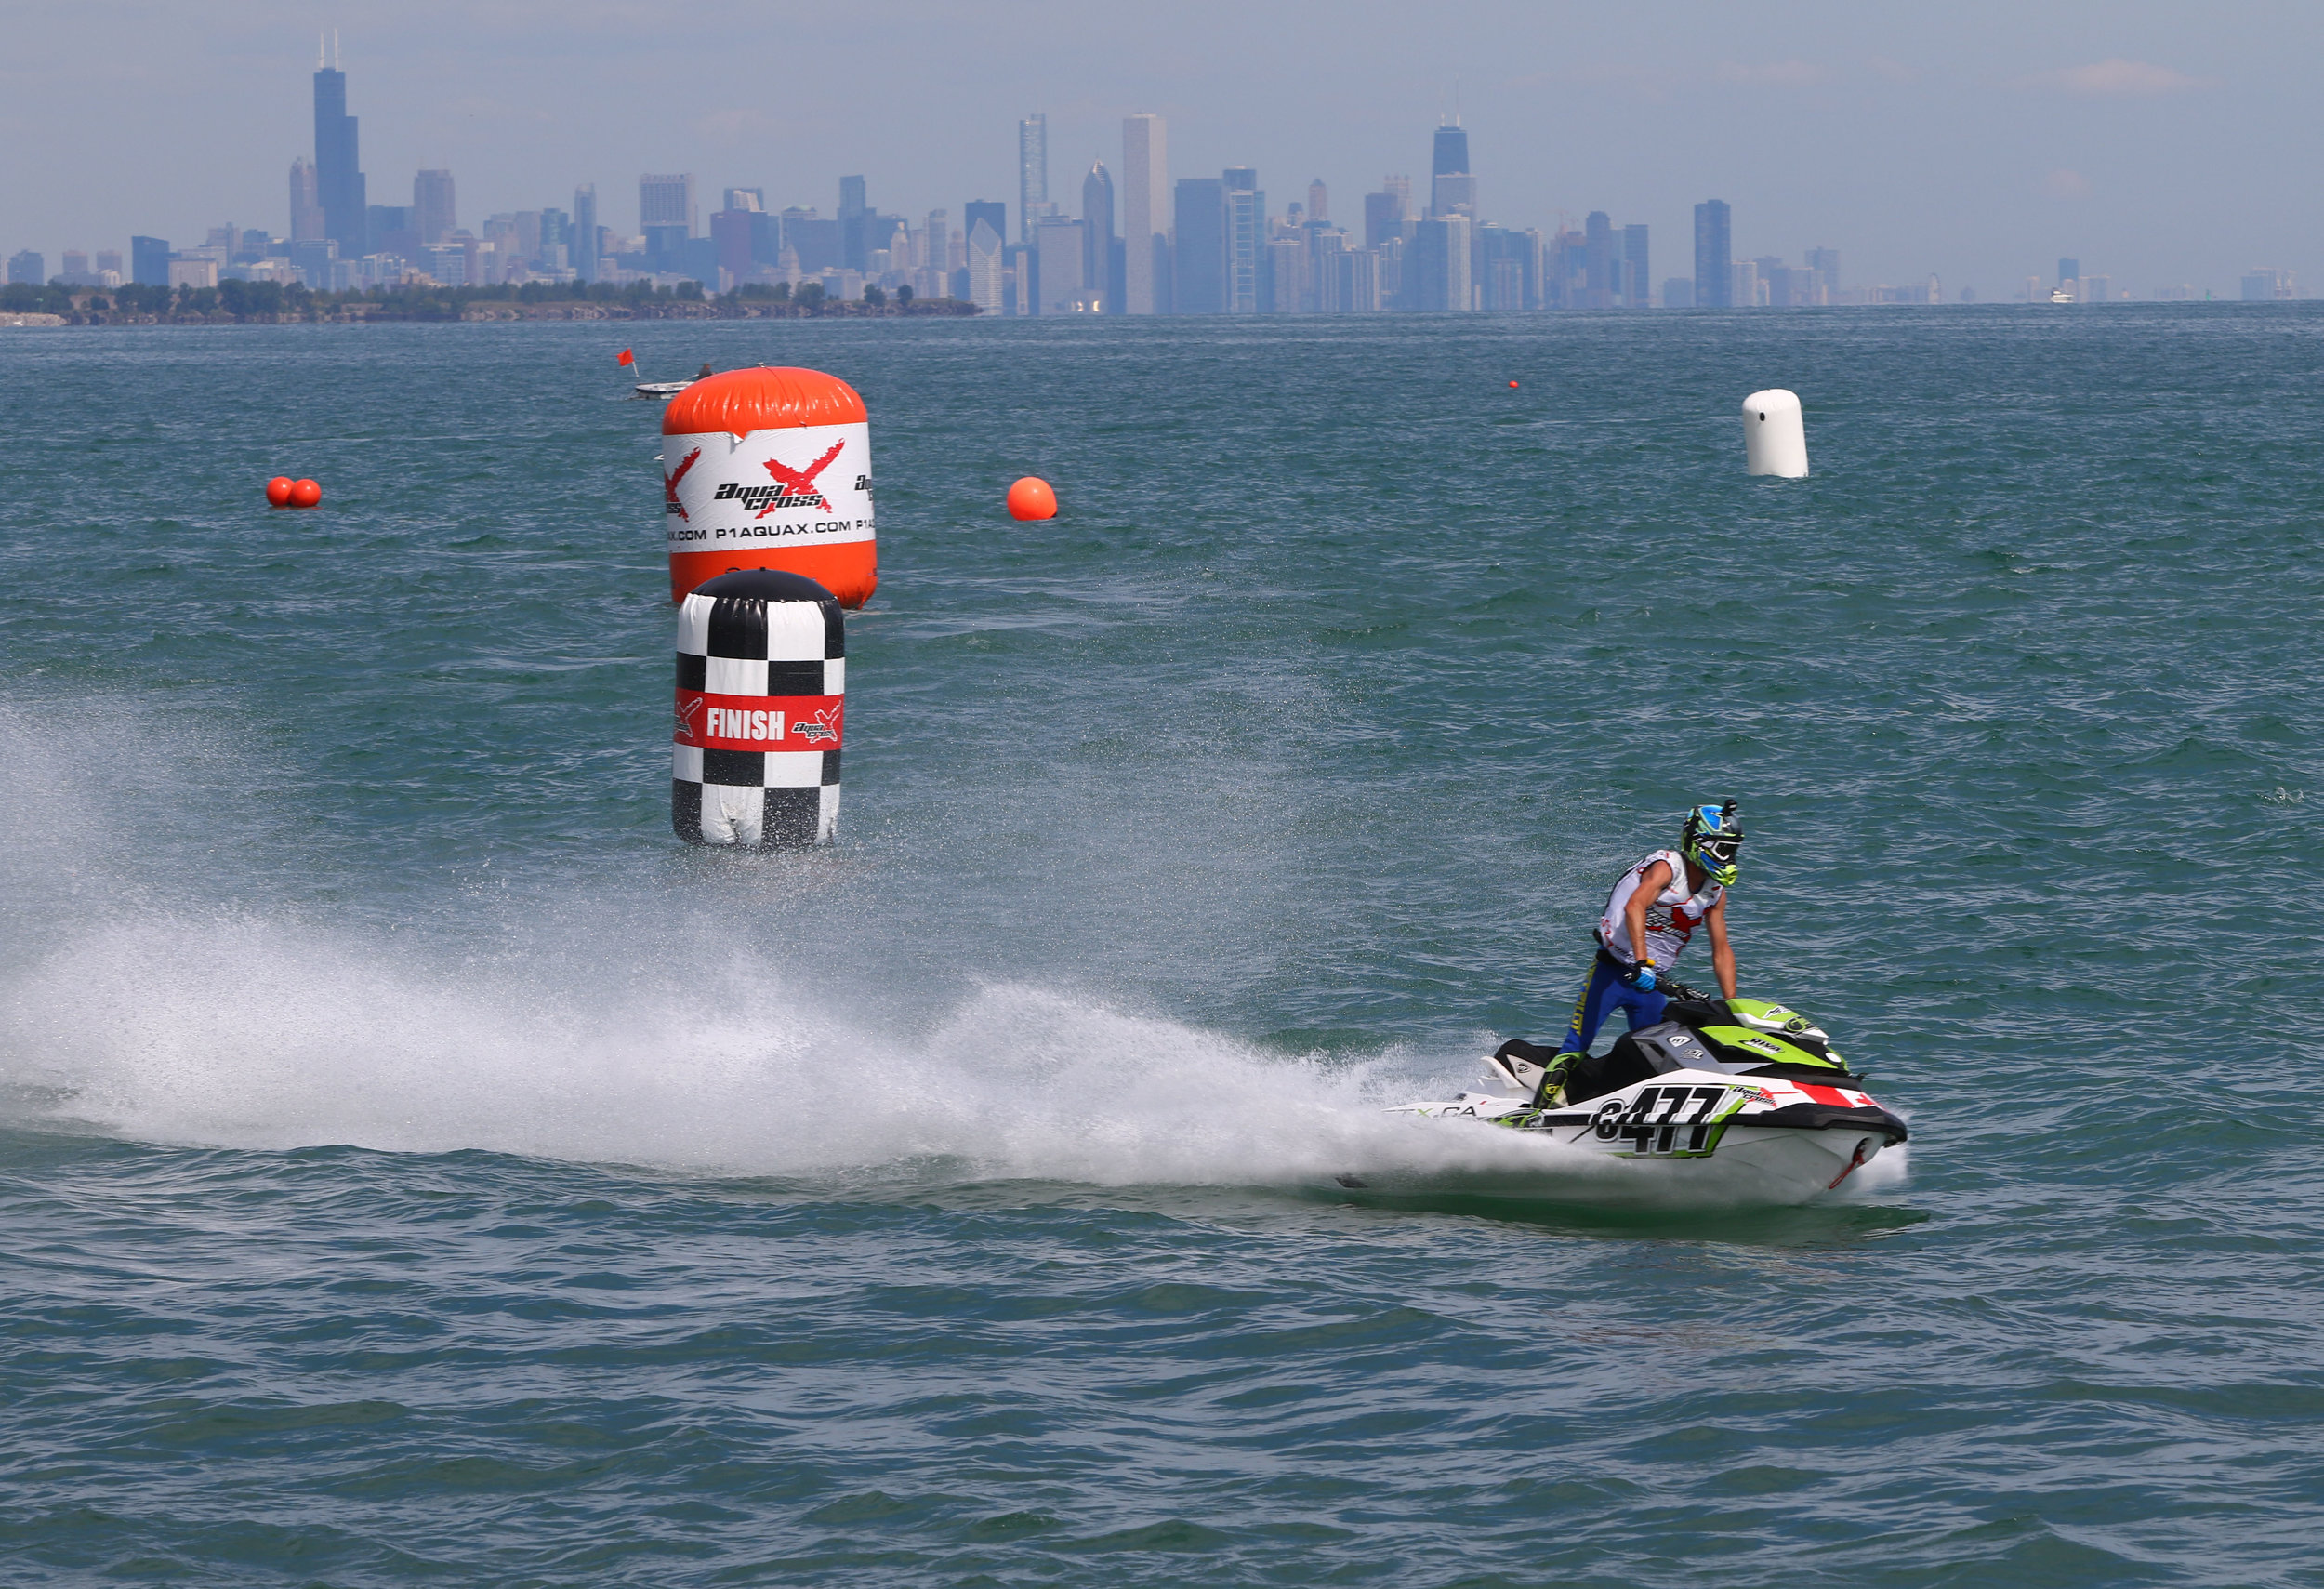 Jay Edworthy, of Cambridge, Ontario, glides past the finish line in race No. 2 of the AquaX Whiting Grand Prix.